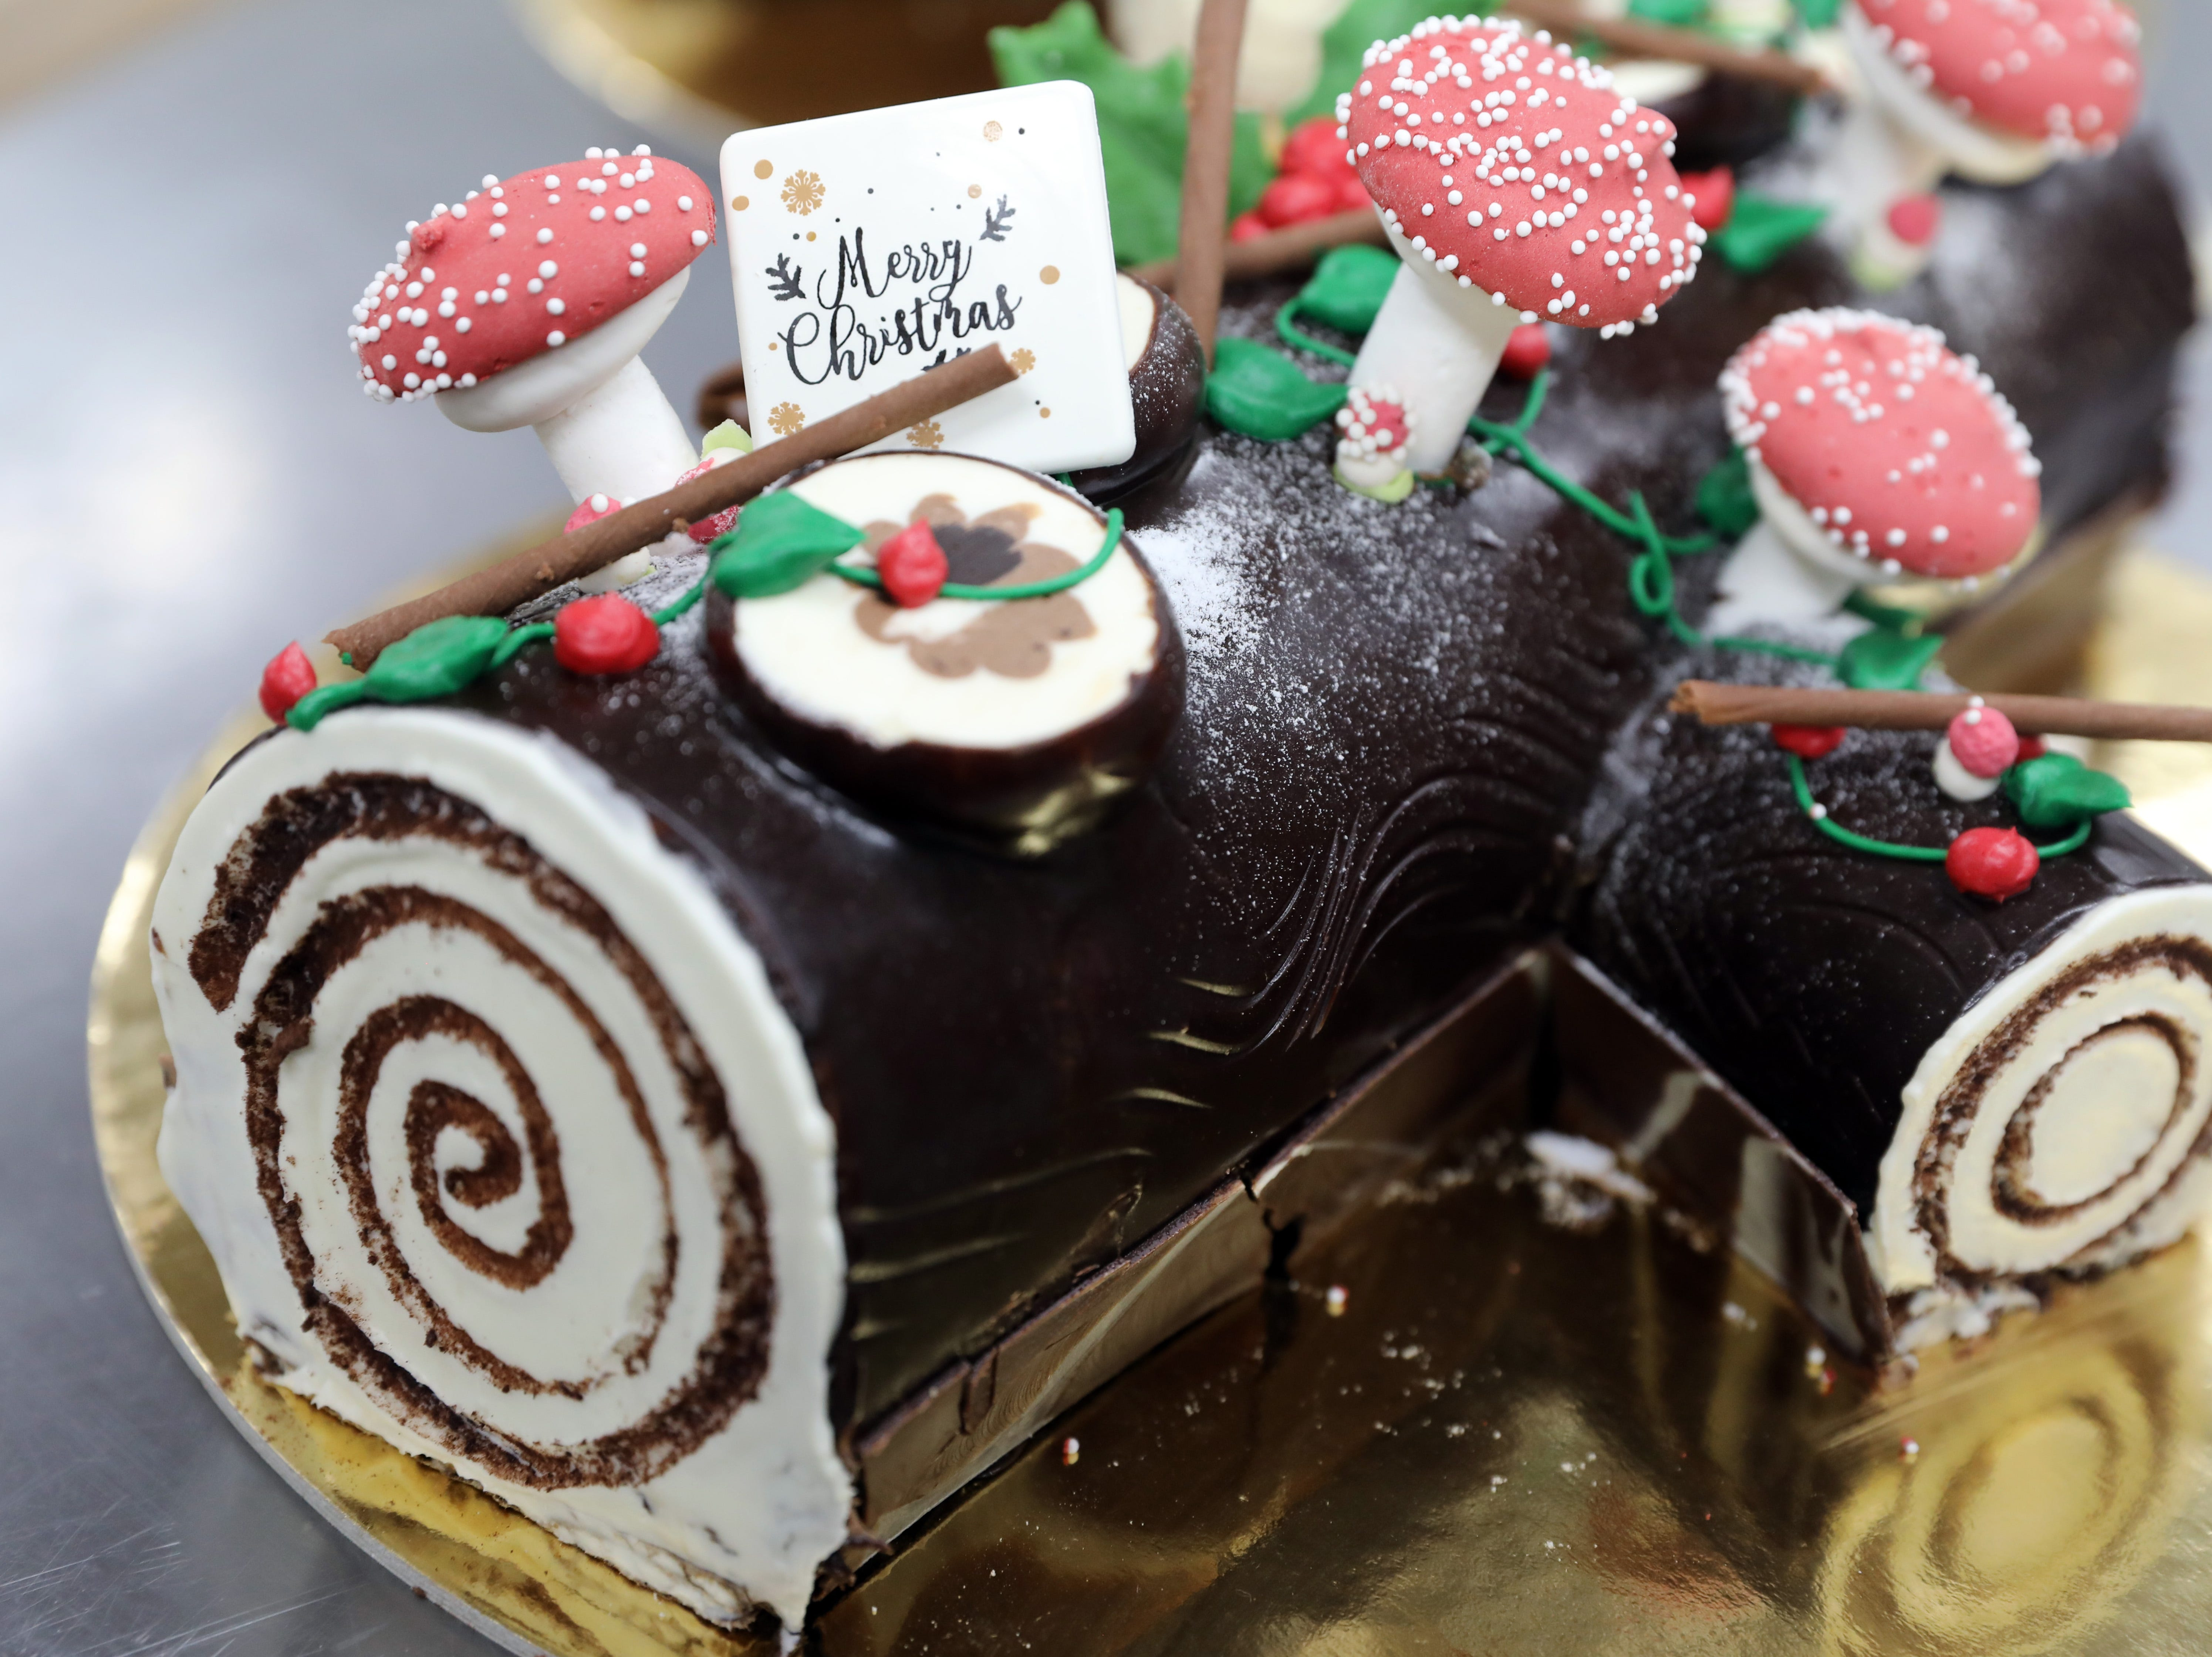 A Yule log cake for the holidays at Martine's Fine Bake Shoppe in Tuckahoe Nov. 29, 2018. The family bakery, which has a second location in Scarsdale, is celebrating their 10th anniversary in business.